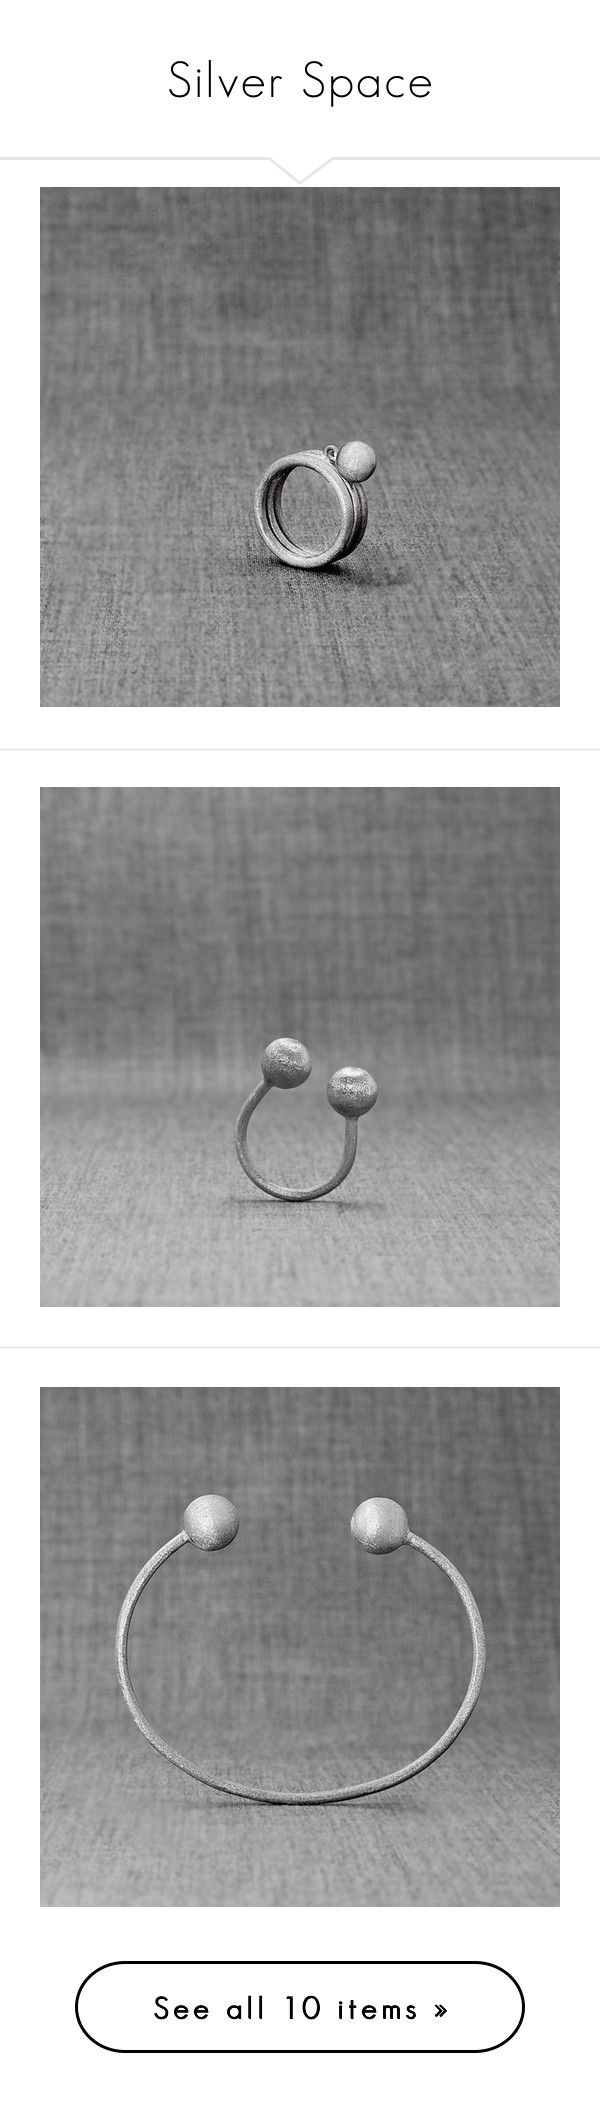 """Silver Space"" by kissthecrownedfrog on Polyvore featuring jewelry, rings, earrings, bracelets, bracelet bangle, cosmic jewelry, bracelet jewelry, handcrafted earrings, silver jewelry and handcrafted silver jewellery"